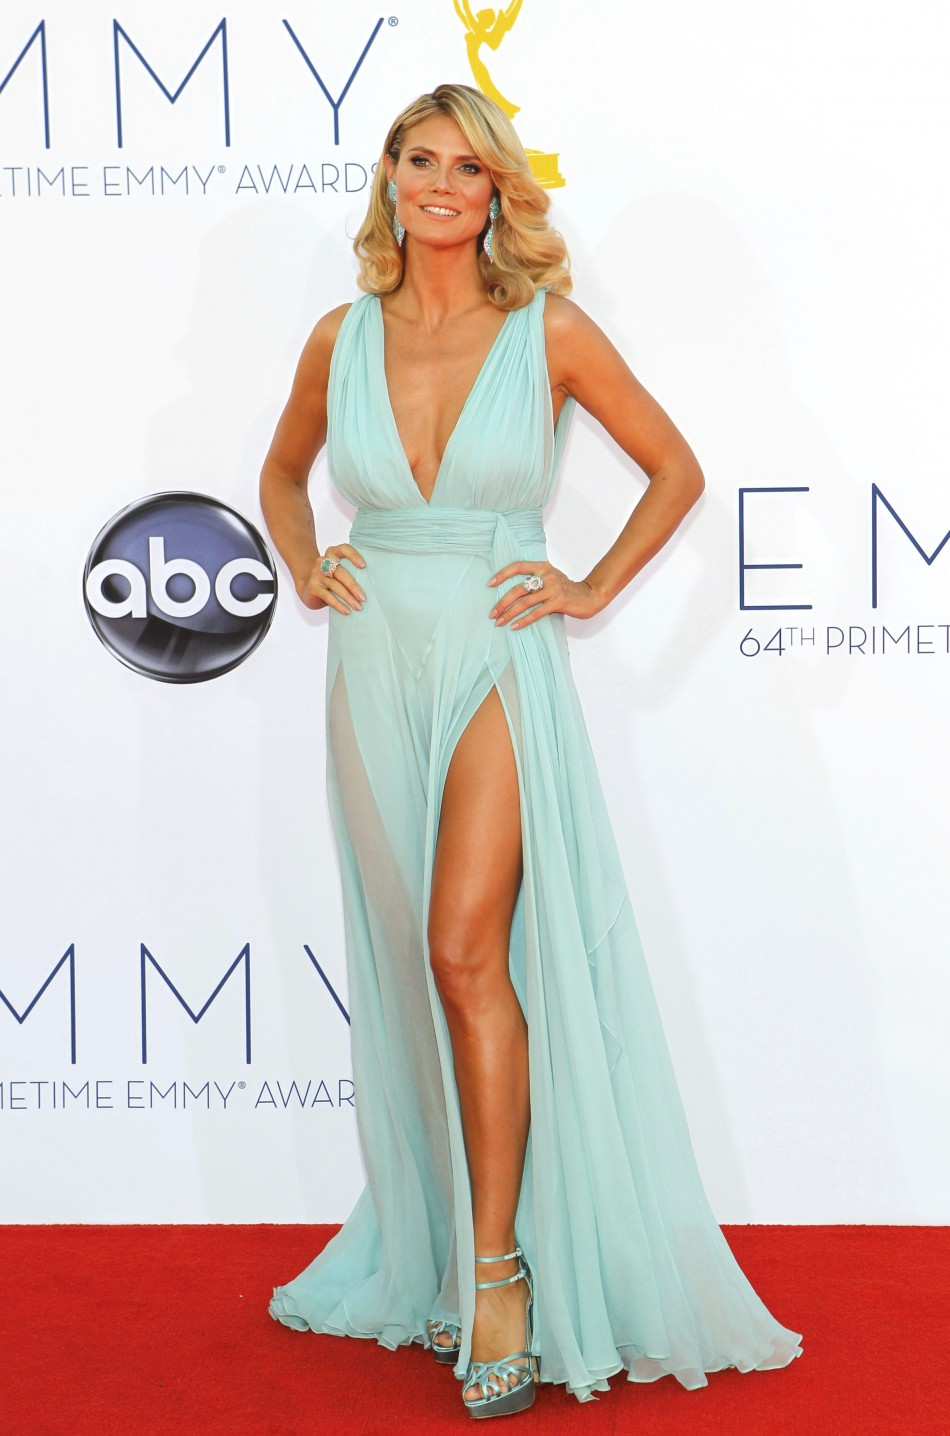 Model Heidi Klum, host of the reality competition series